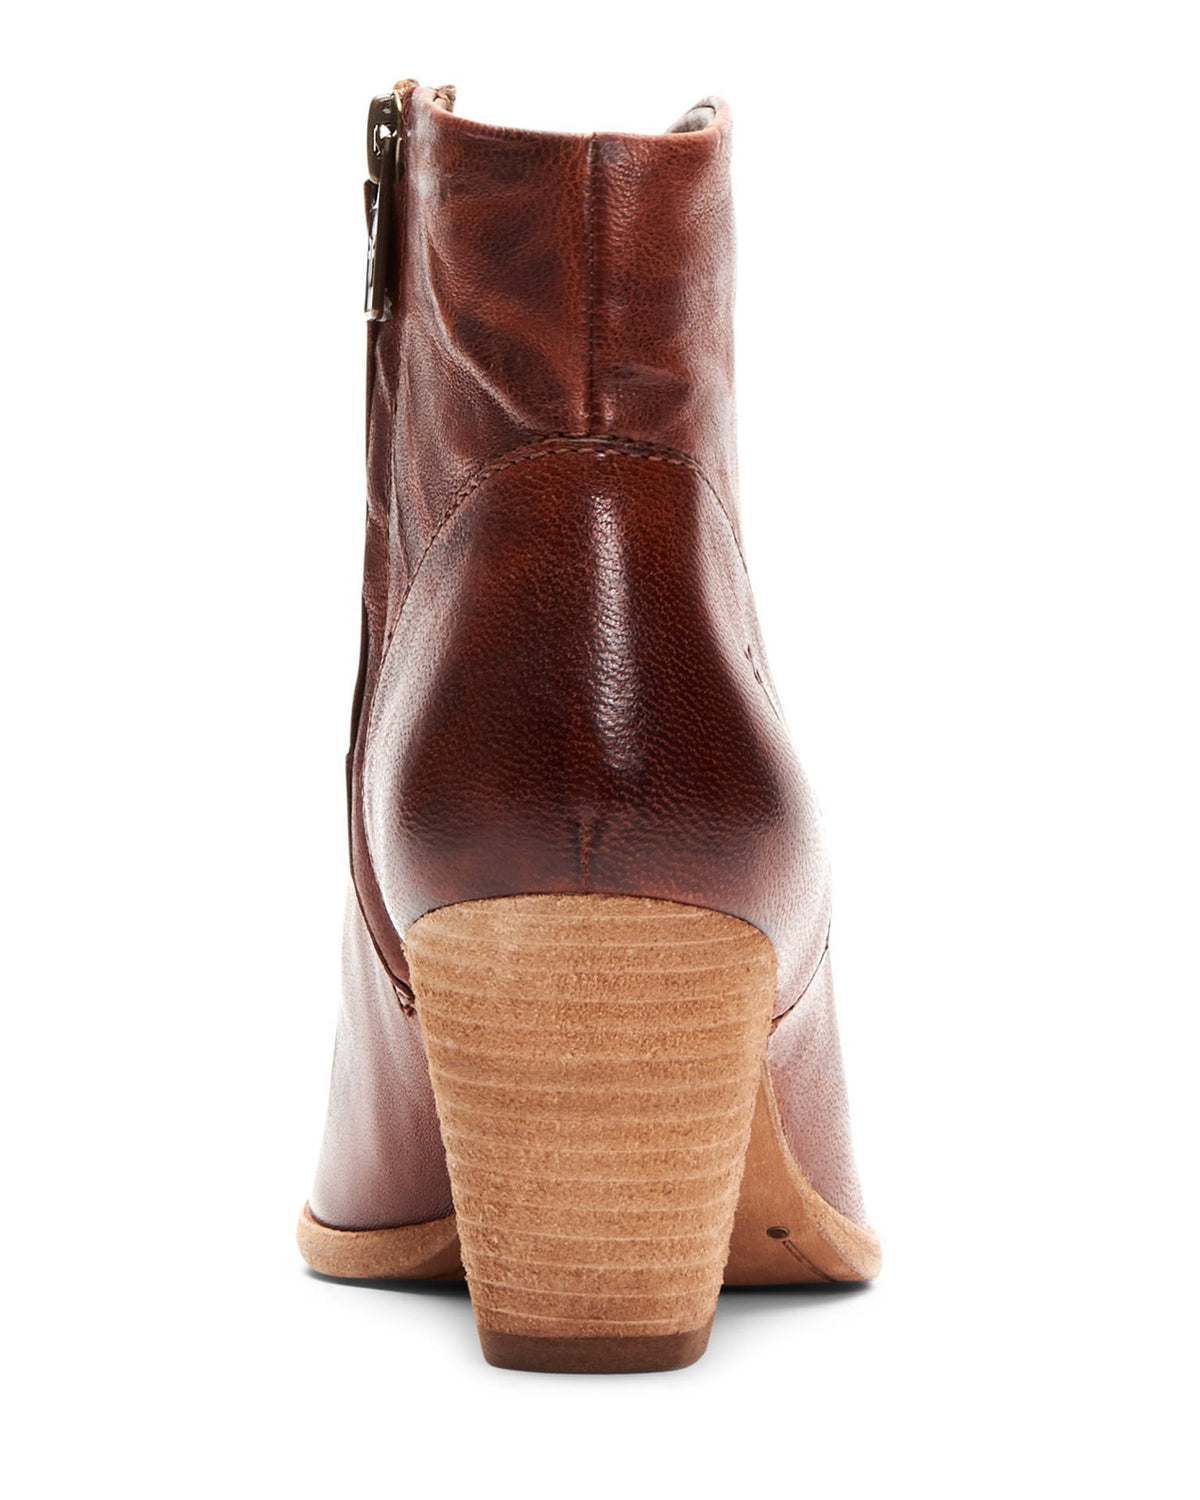 The Frye Company Shoes Cognac / 6 Reed Bootie in Cognac